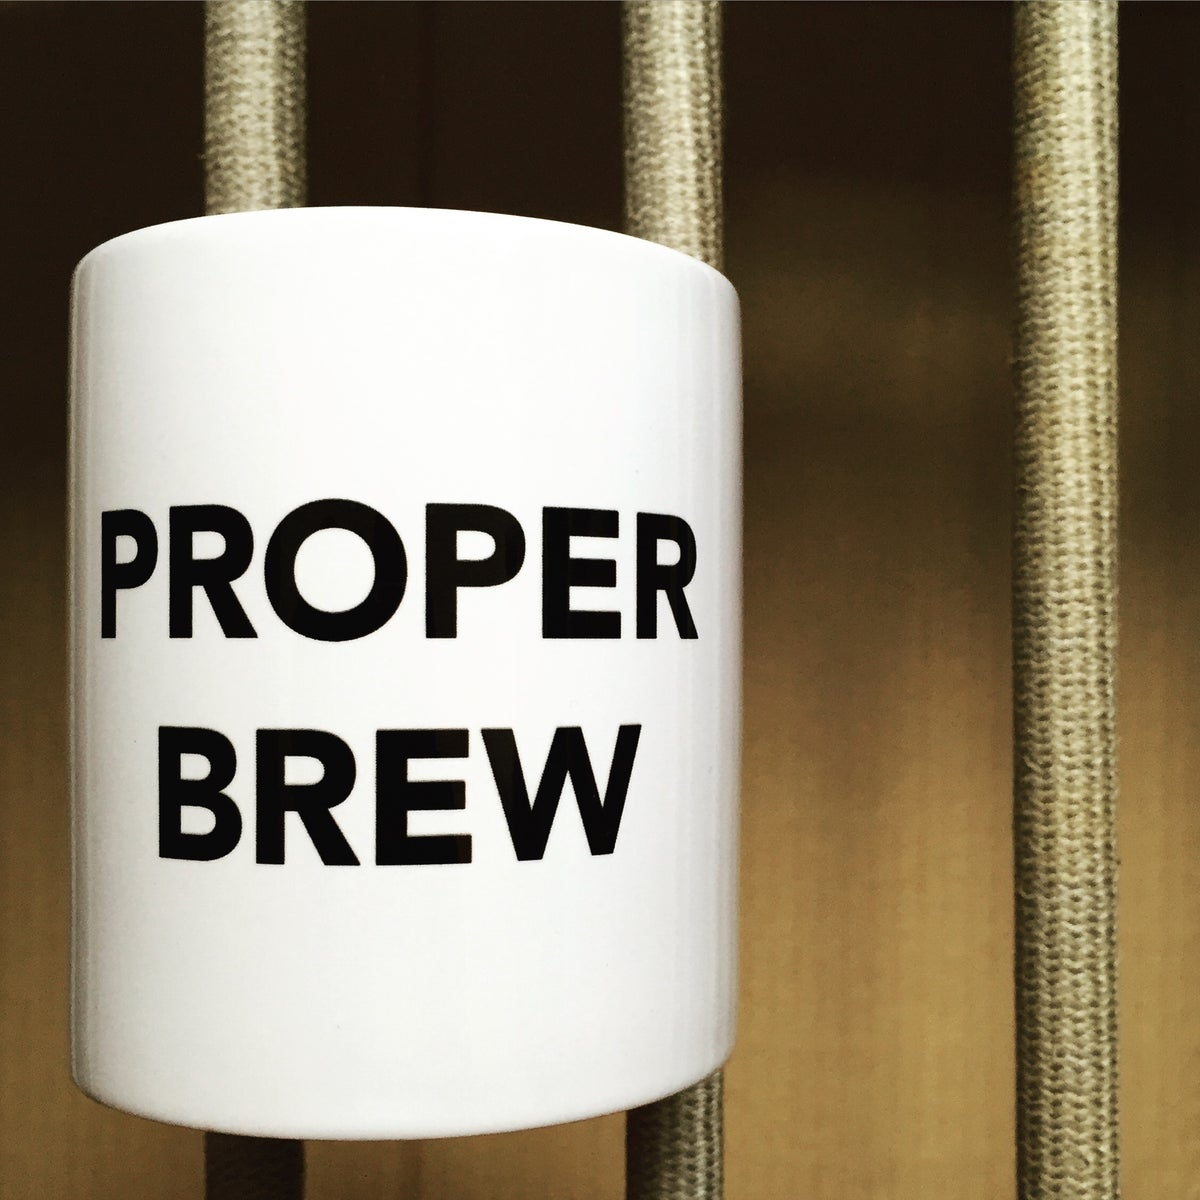 Image of PROPER BREW mug